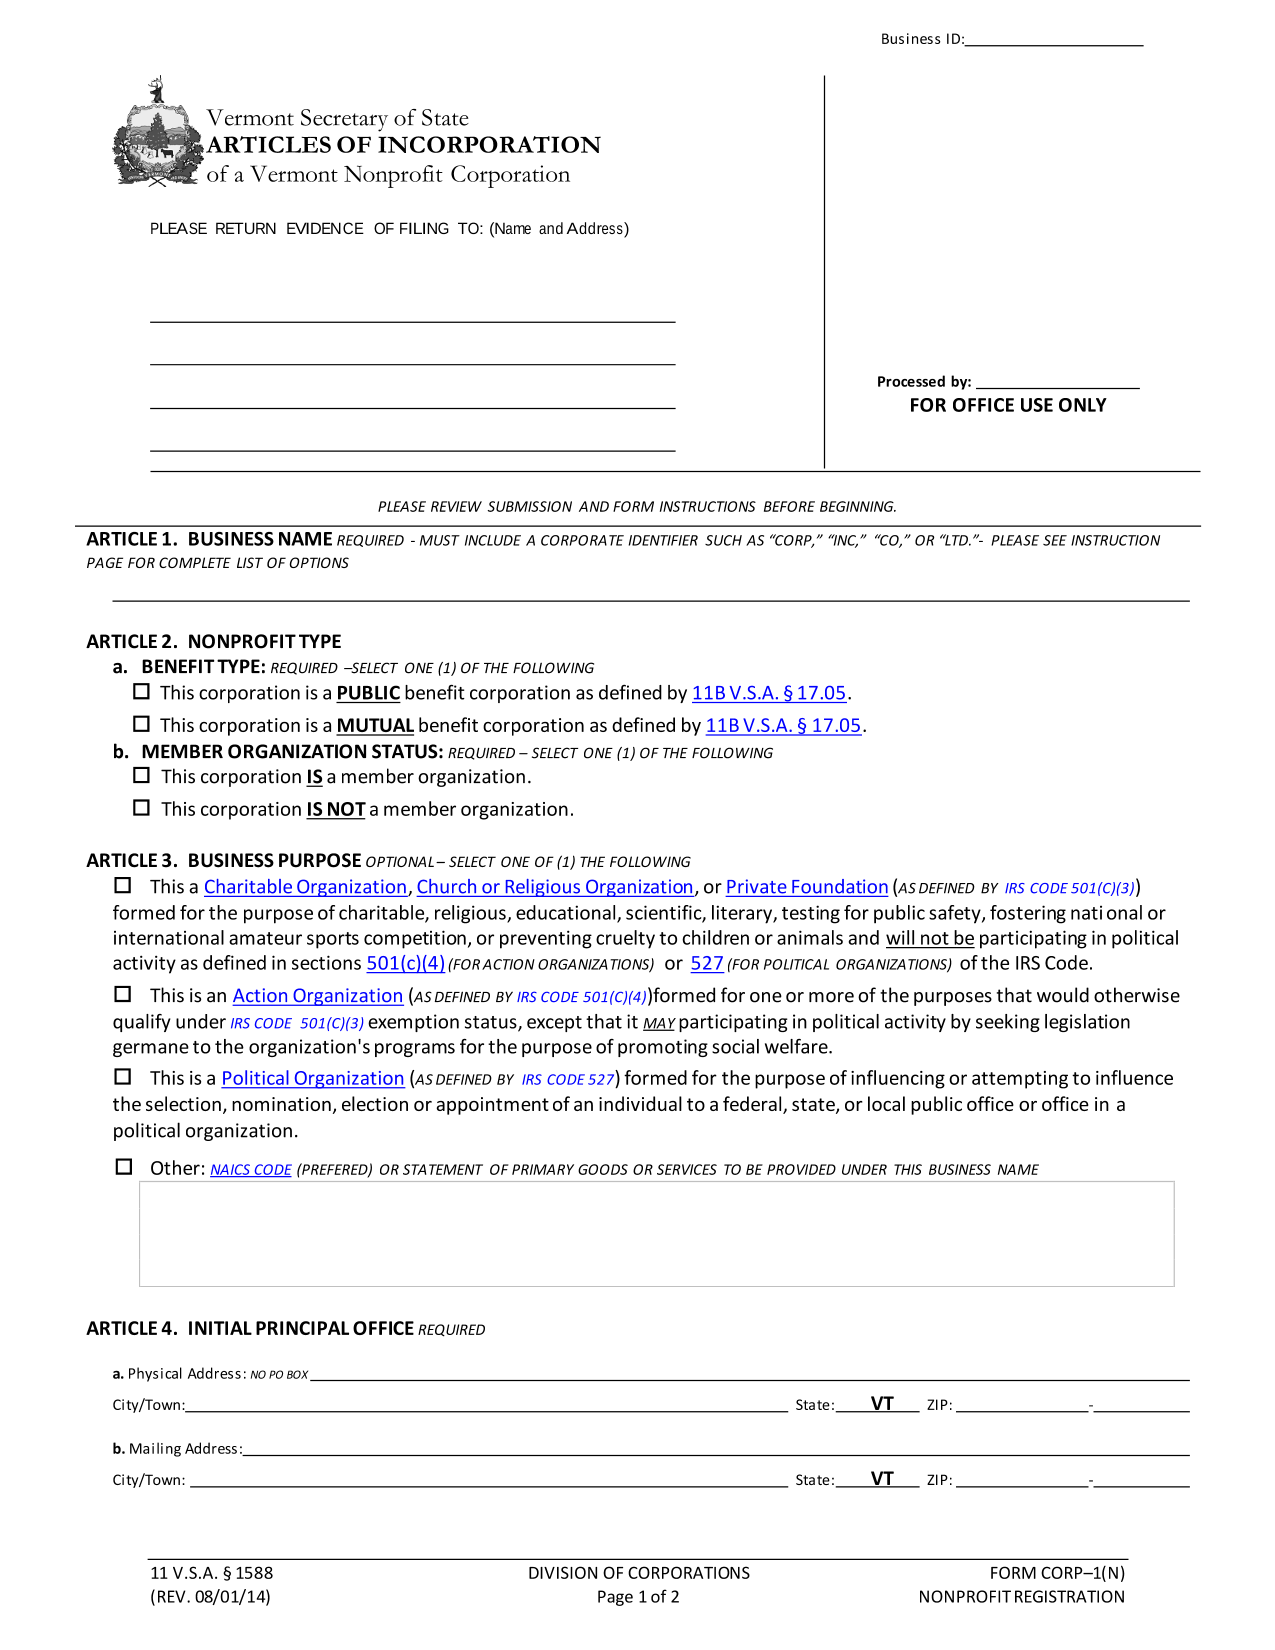 Articles of Incorporation of a Vermont Nonprofit Corporation